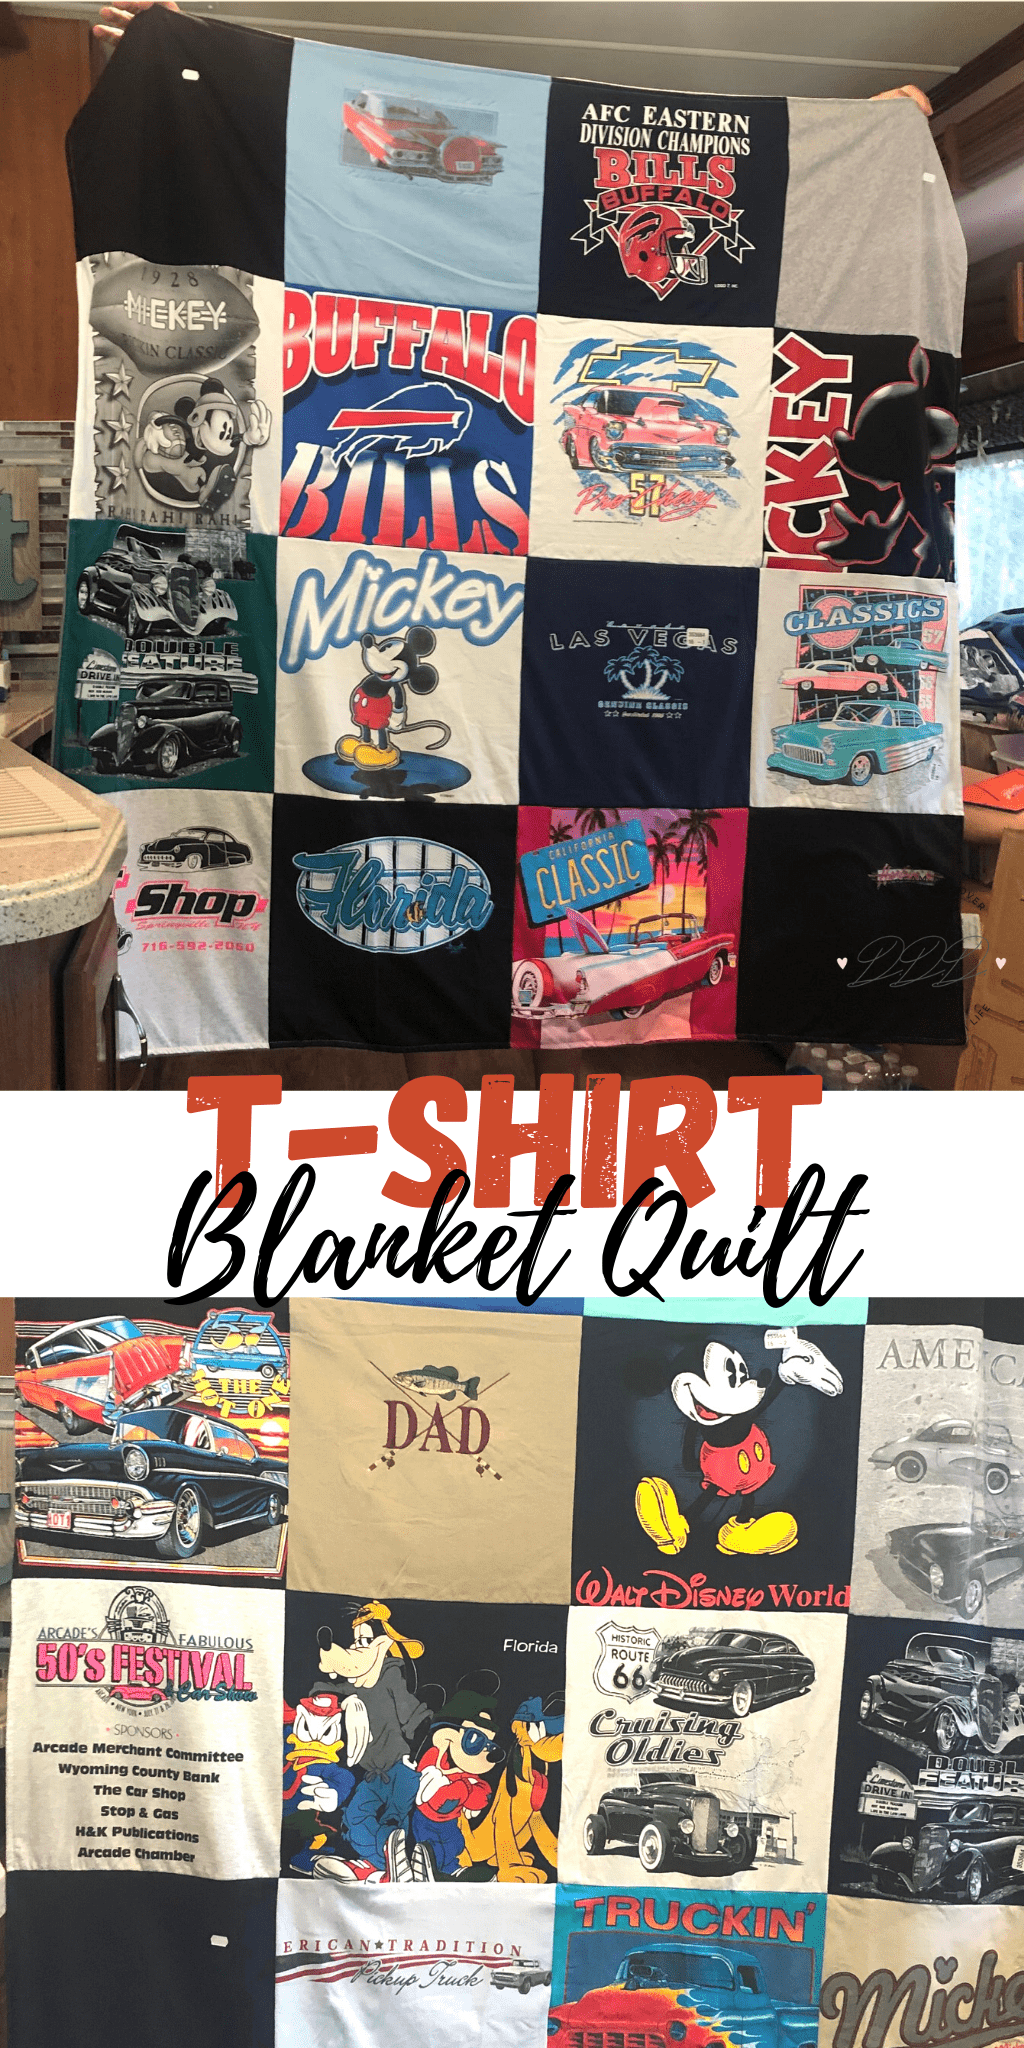 t-shirt blanket keepsake quilt